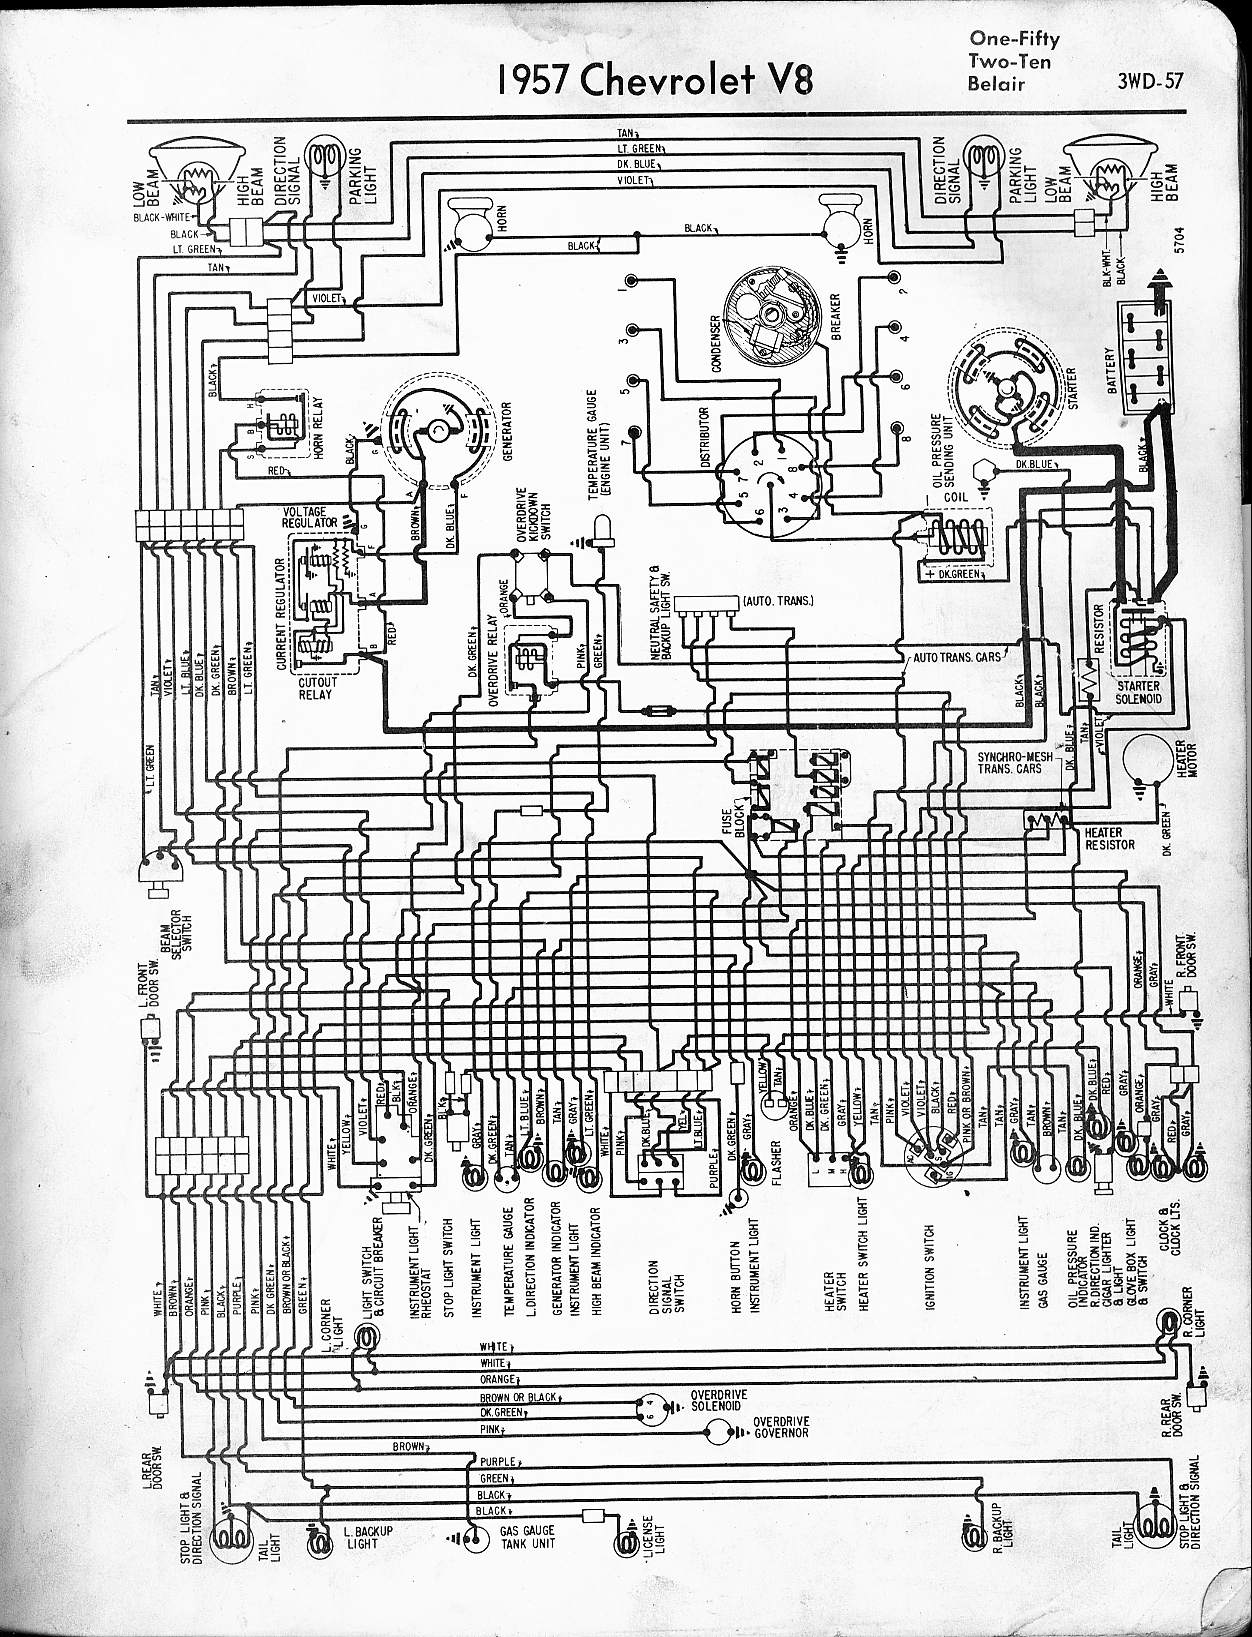 1957 chevy fuse diagram - wiring diagram system doubt-norm-a -  doubt-norm-a.ediliadesign.it  ediliadesign.it